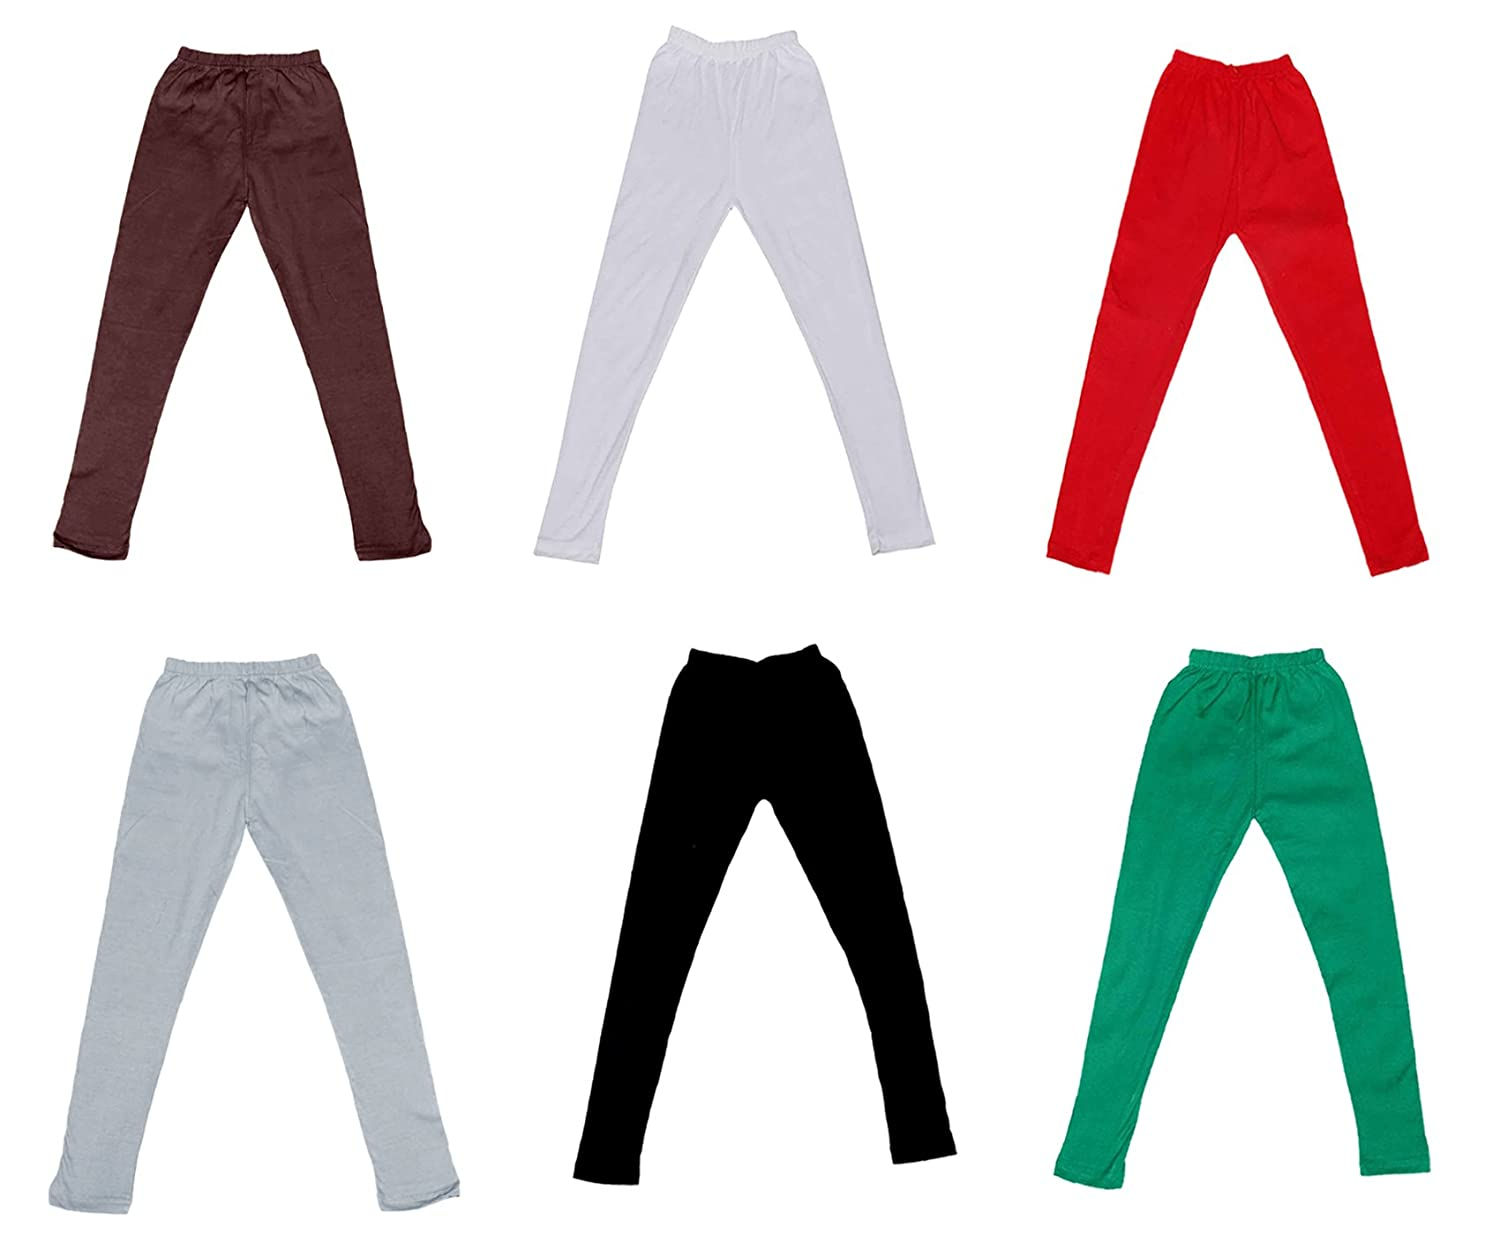 Indistar Cotton Super Soft Solid Multicolor Leggings for Girls Pack of 6